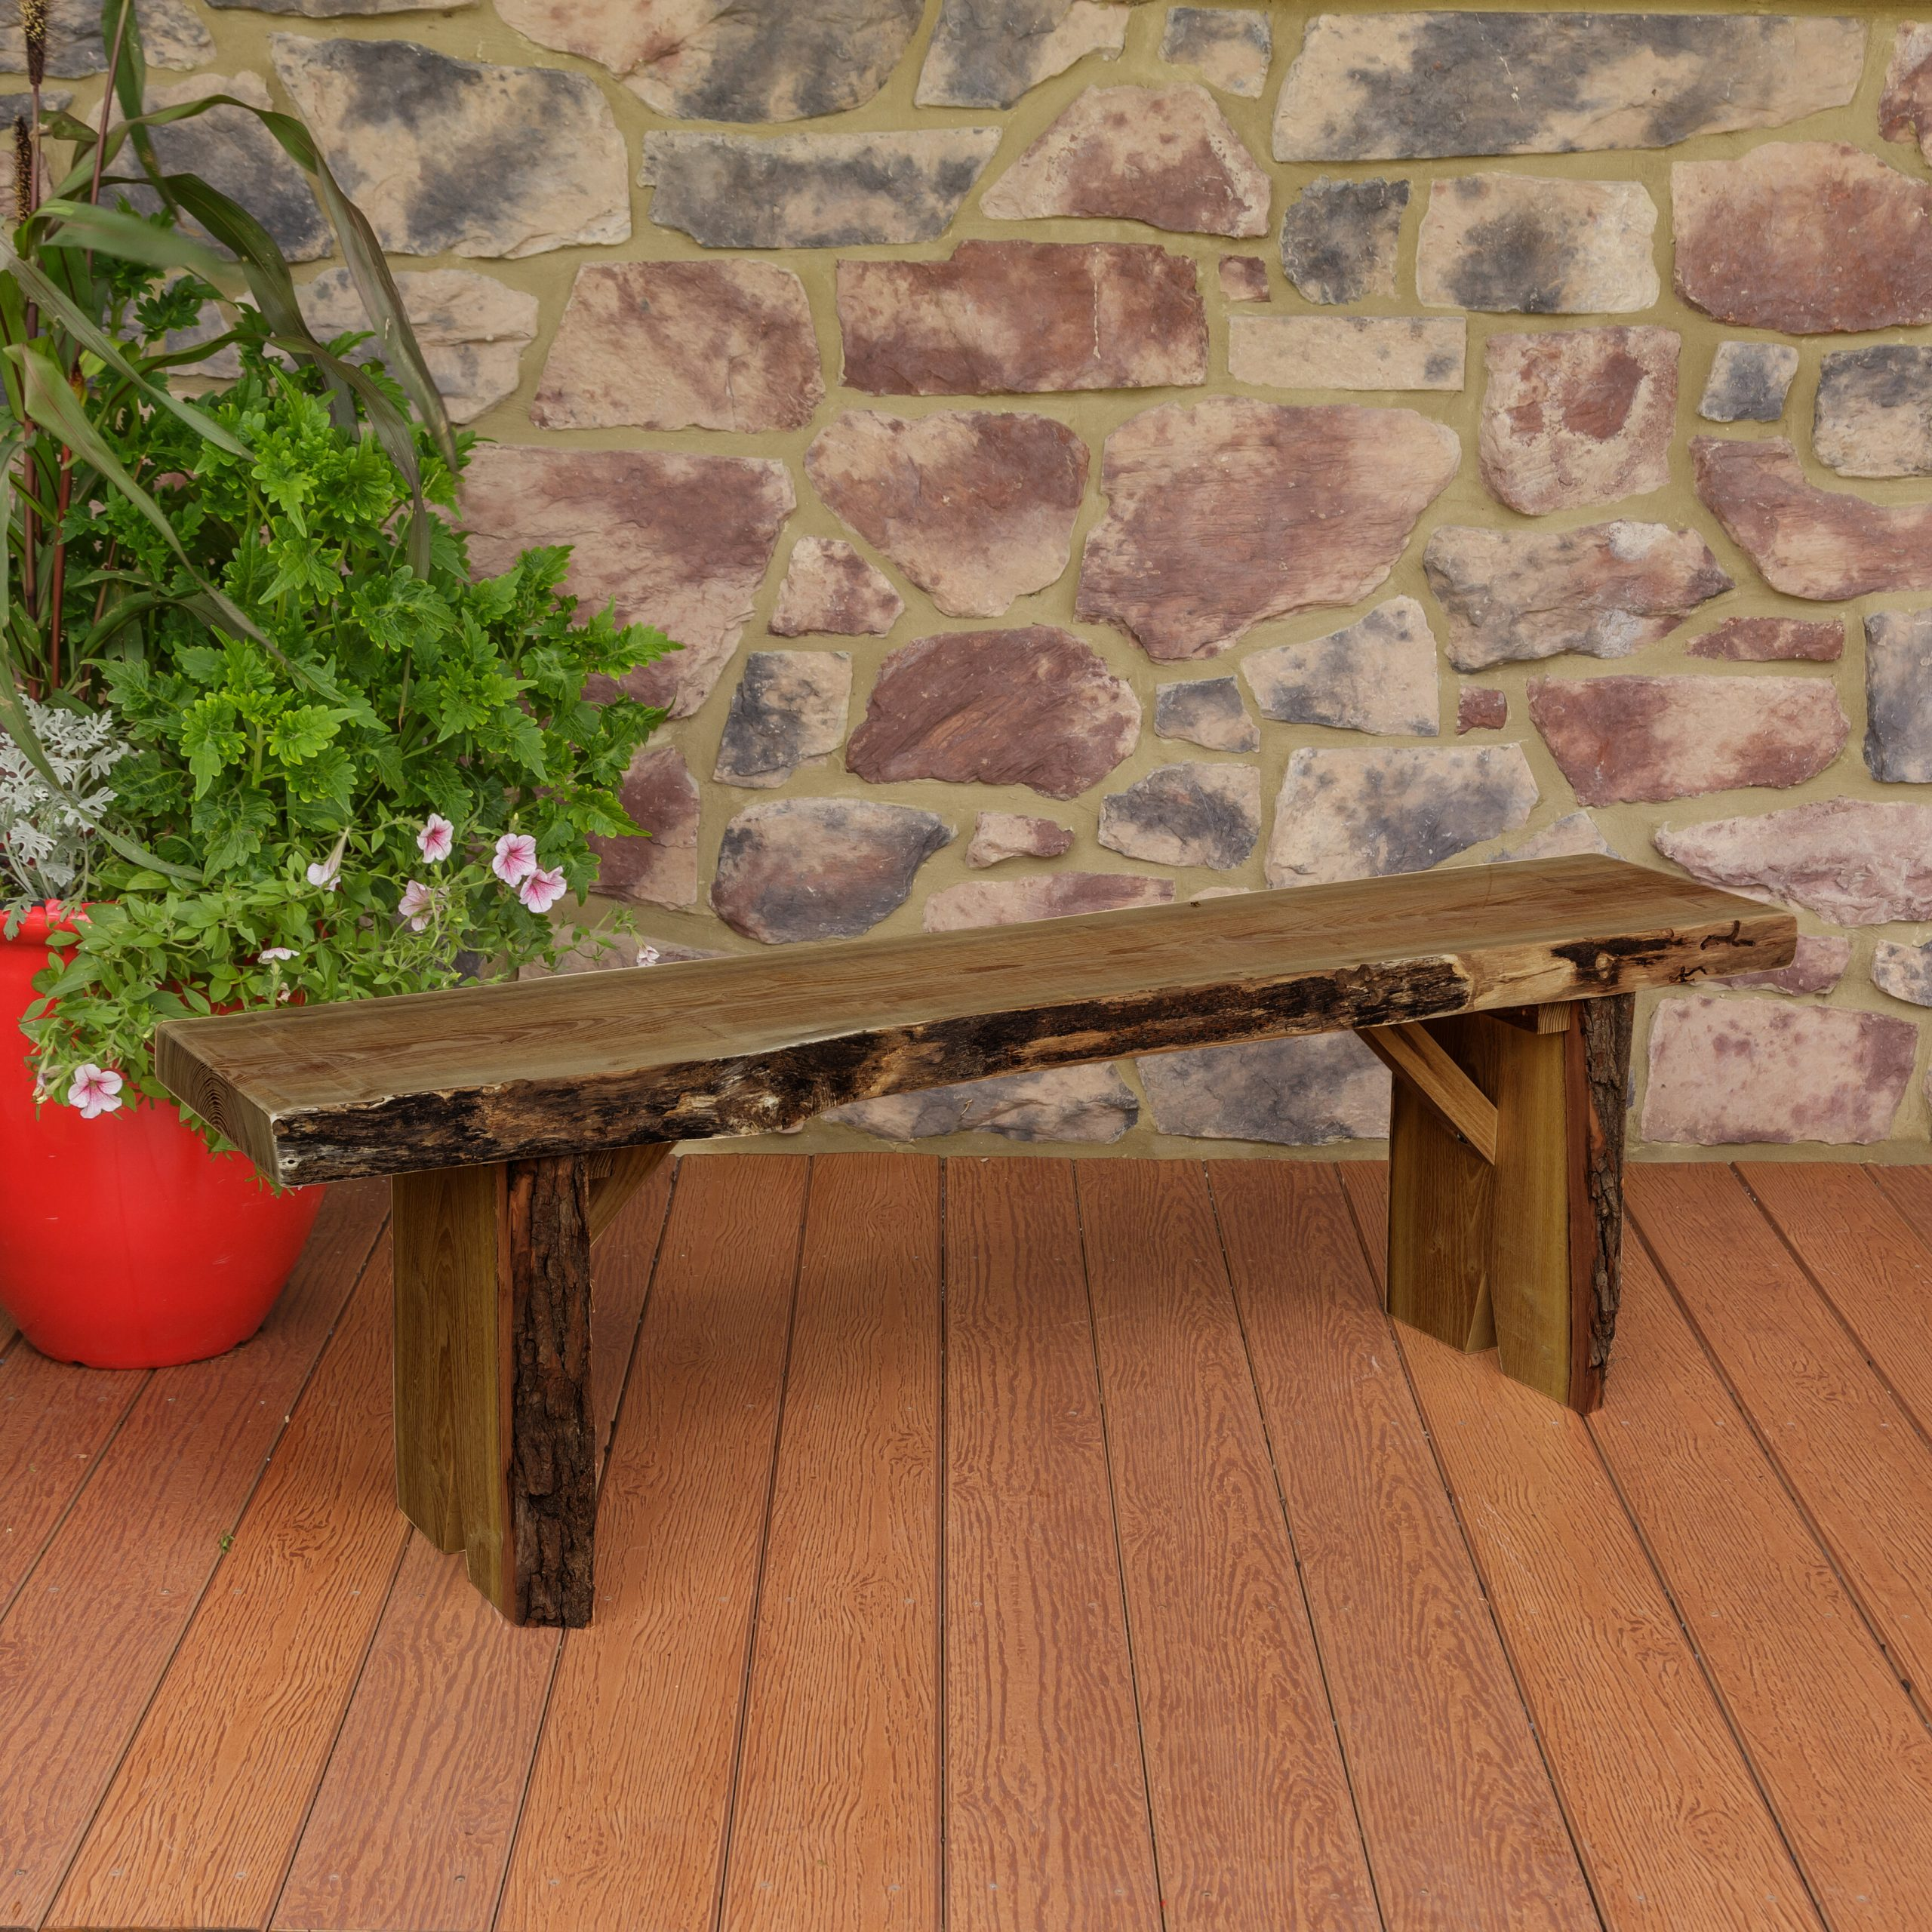 Bruggeman Live Edge Solid Wood Garden Bench Throughout Gabbert Wooden Garden Benches (View 14 of 25)